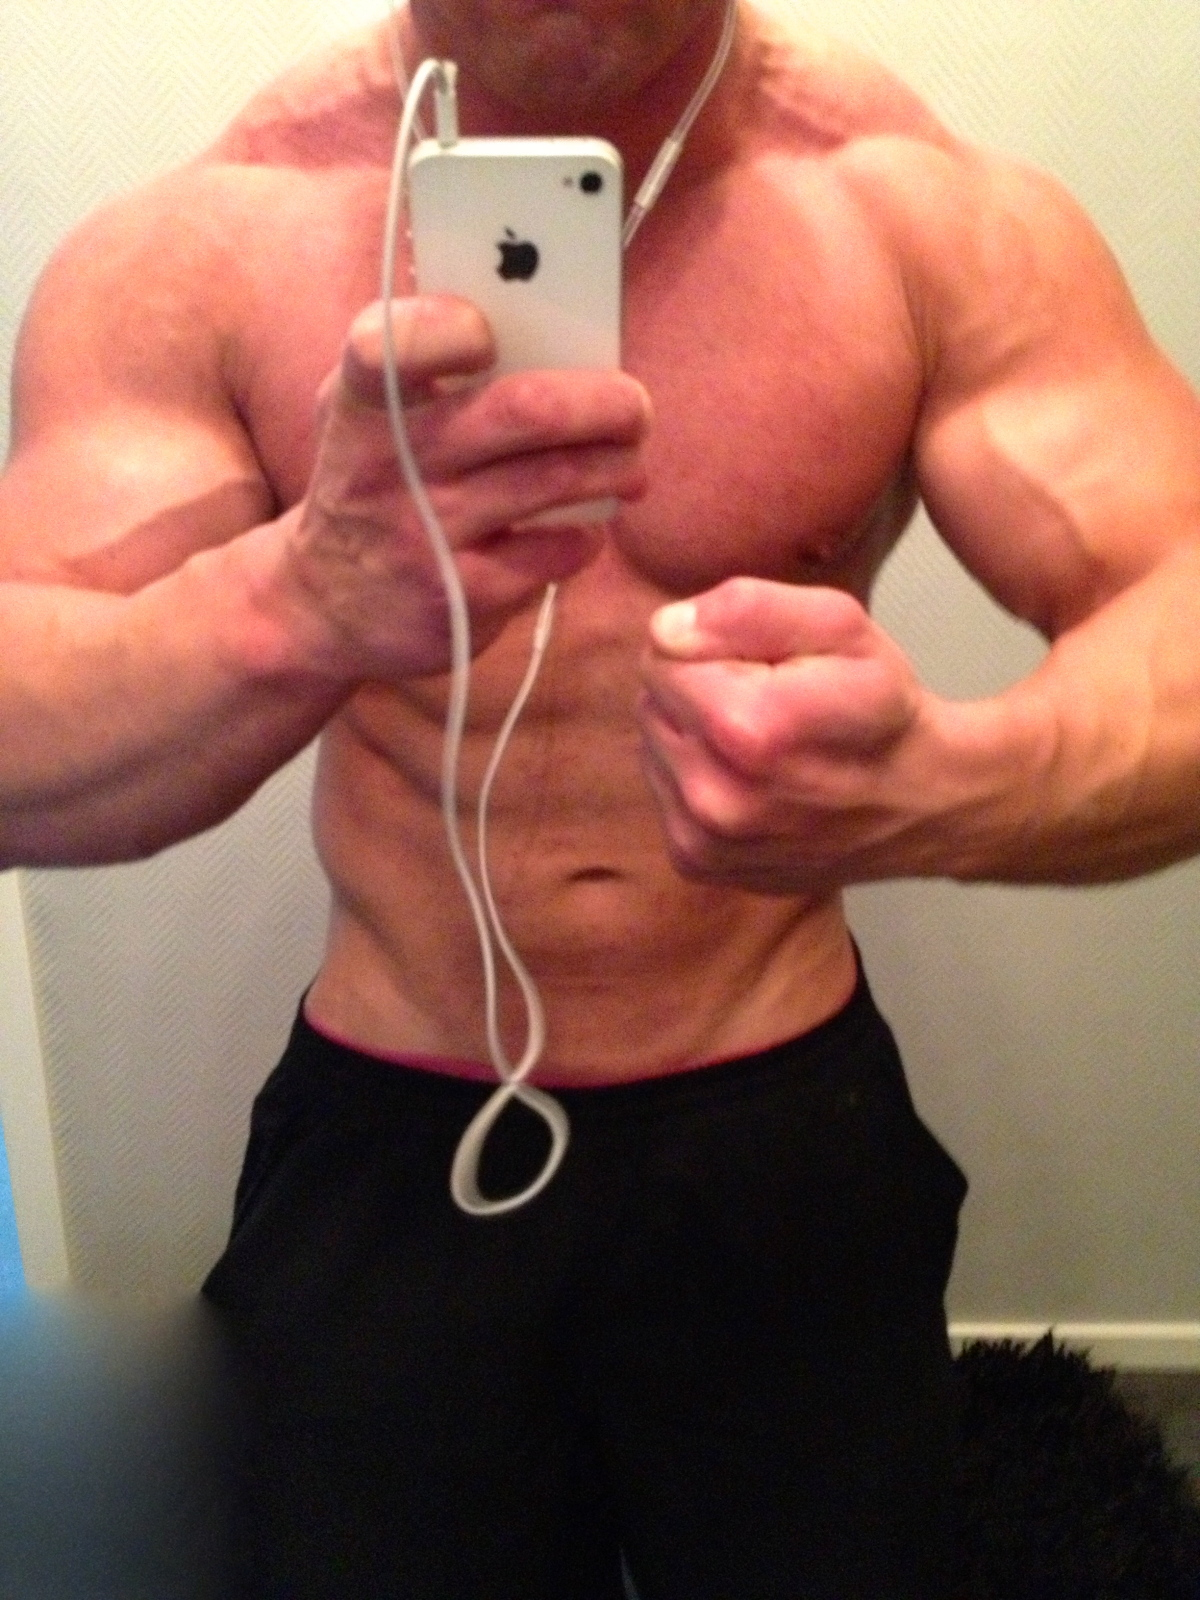 trenbolone effects on muscle